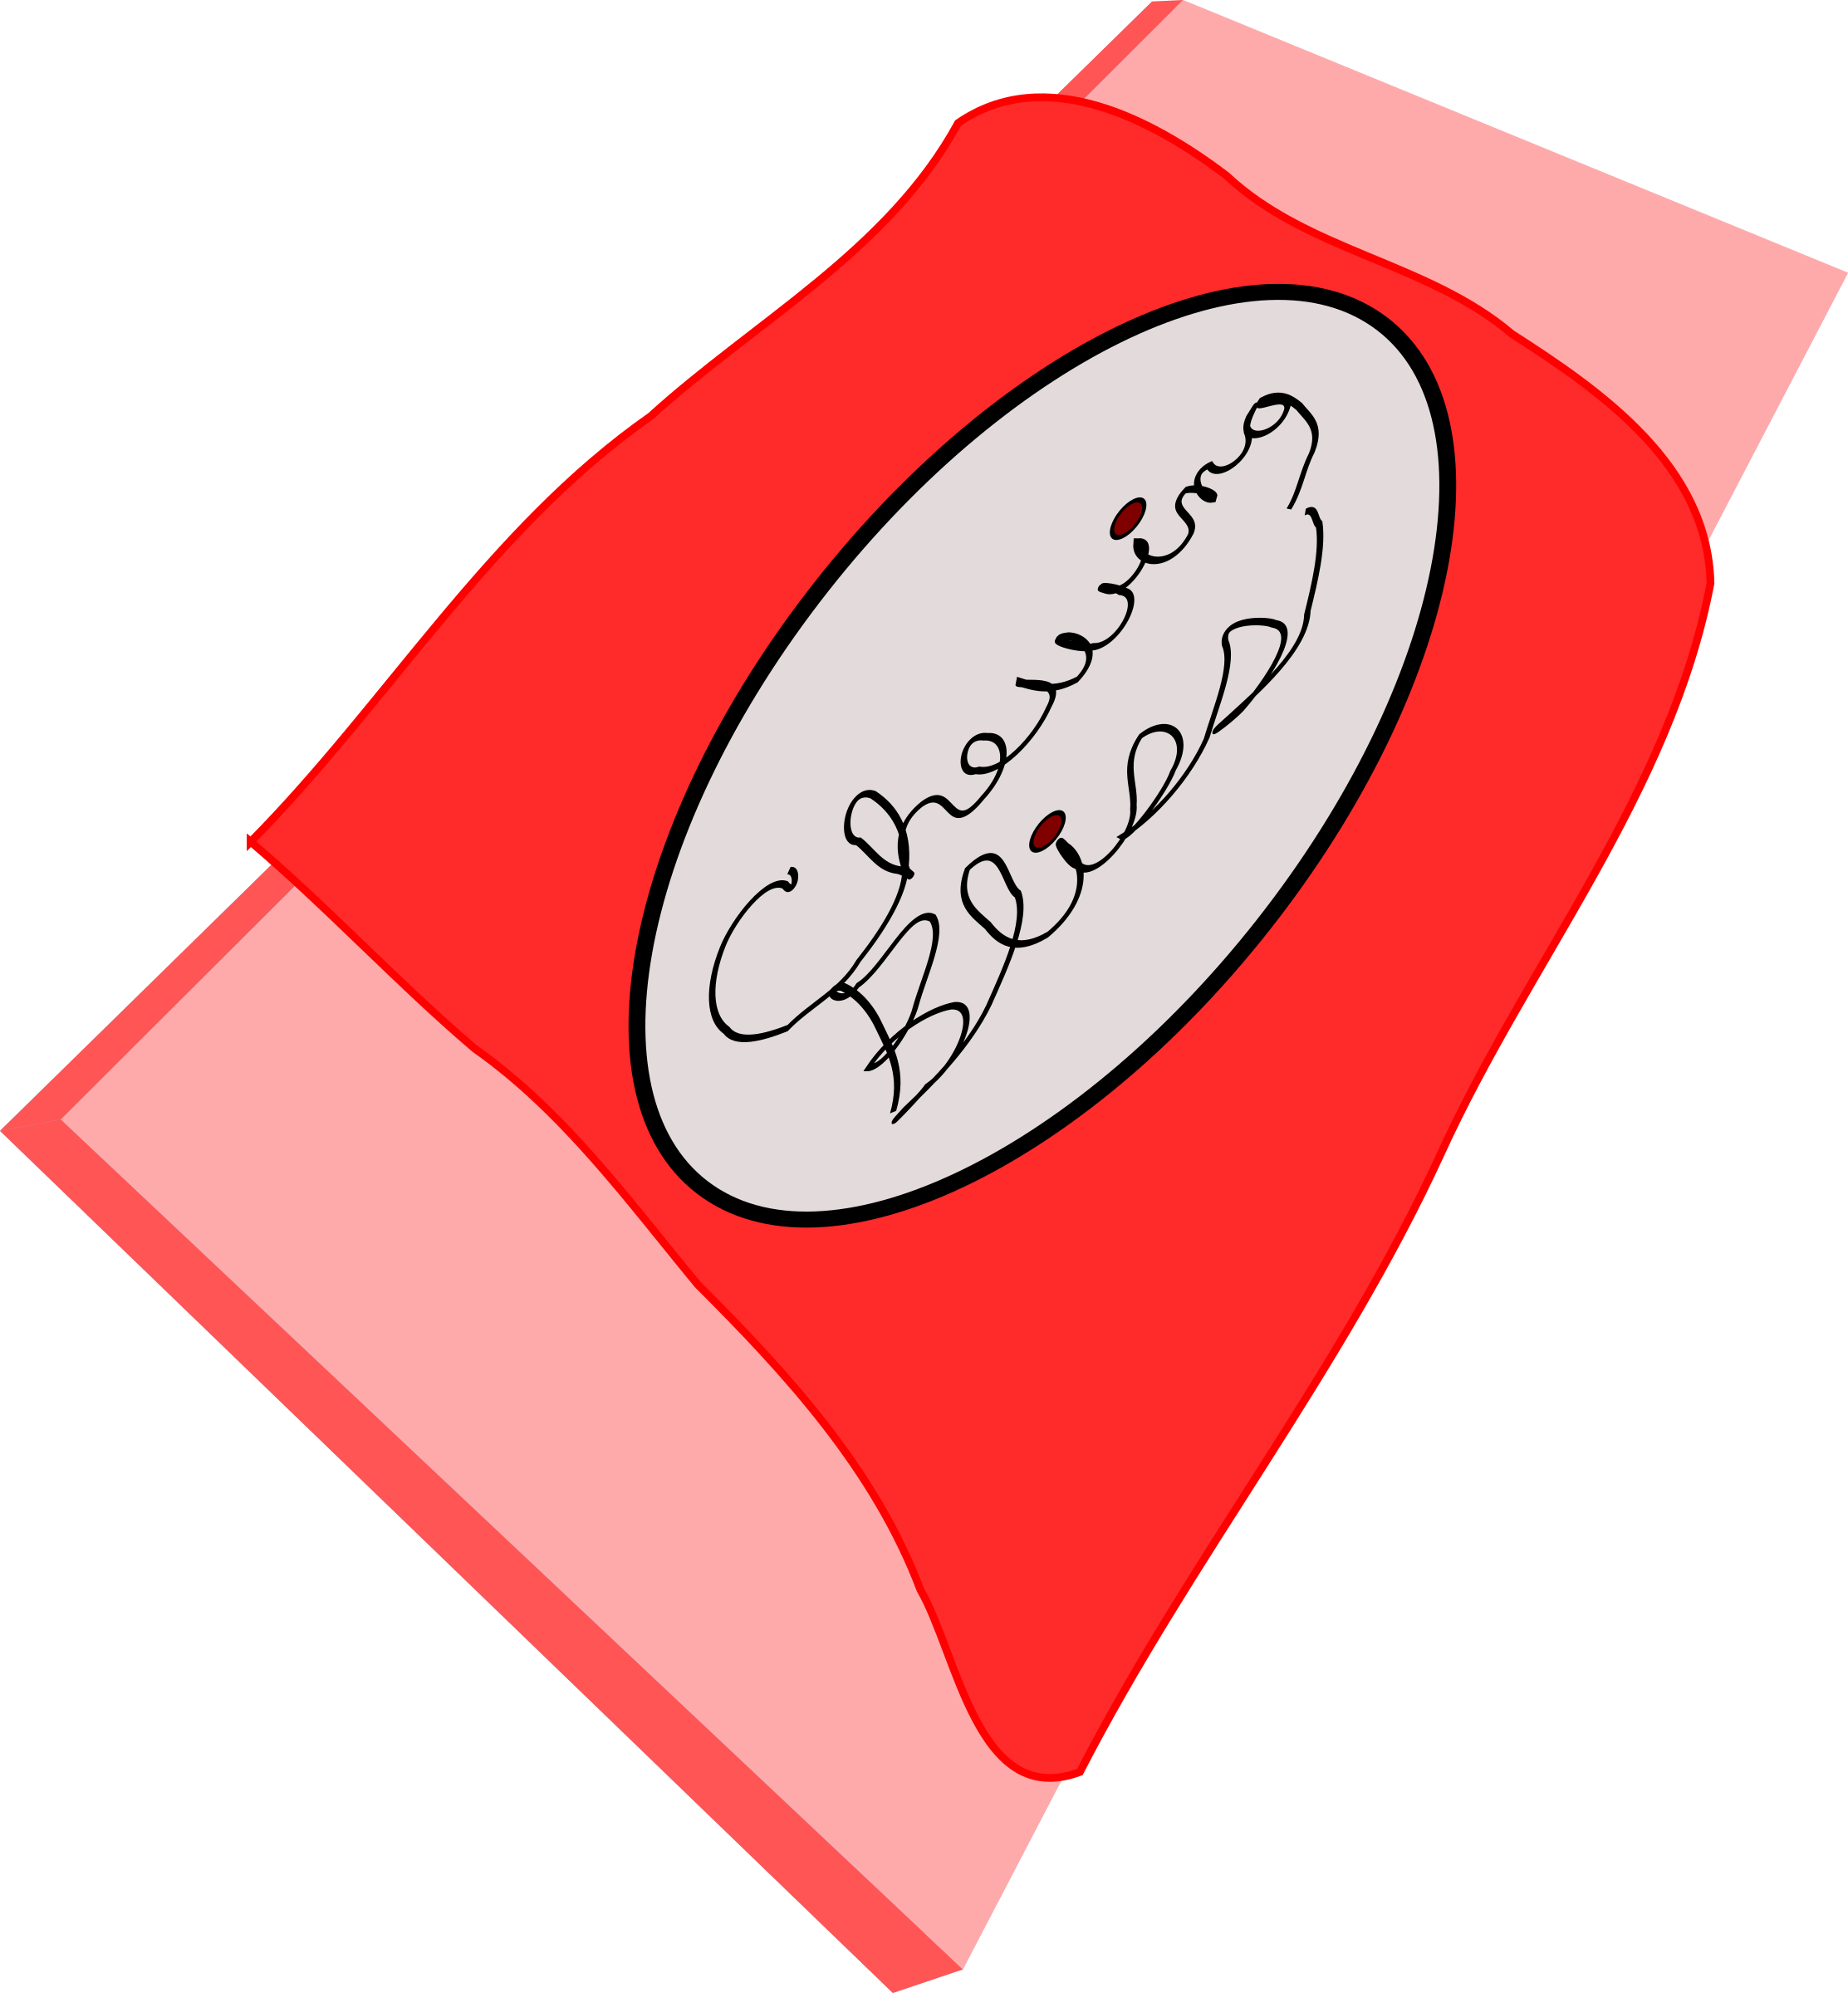 Chewing Gum clipart transparent Gum Chewing Chewing Gum Clipart